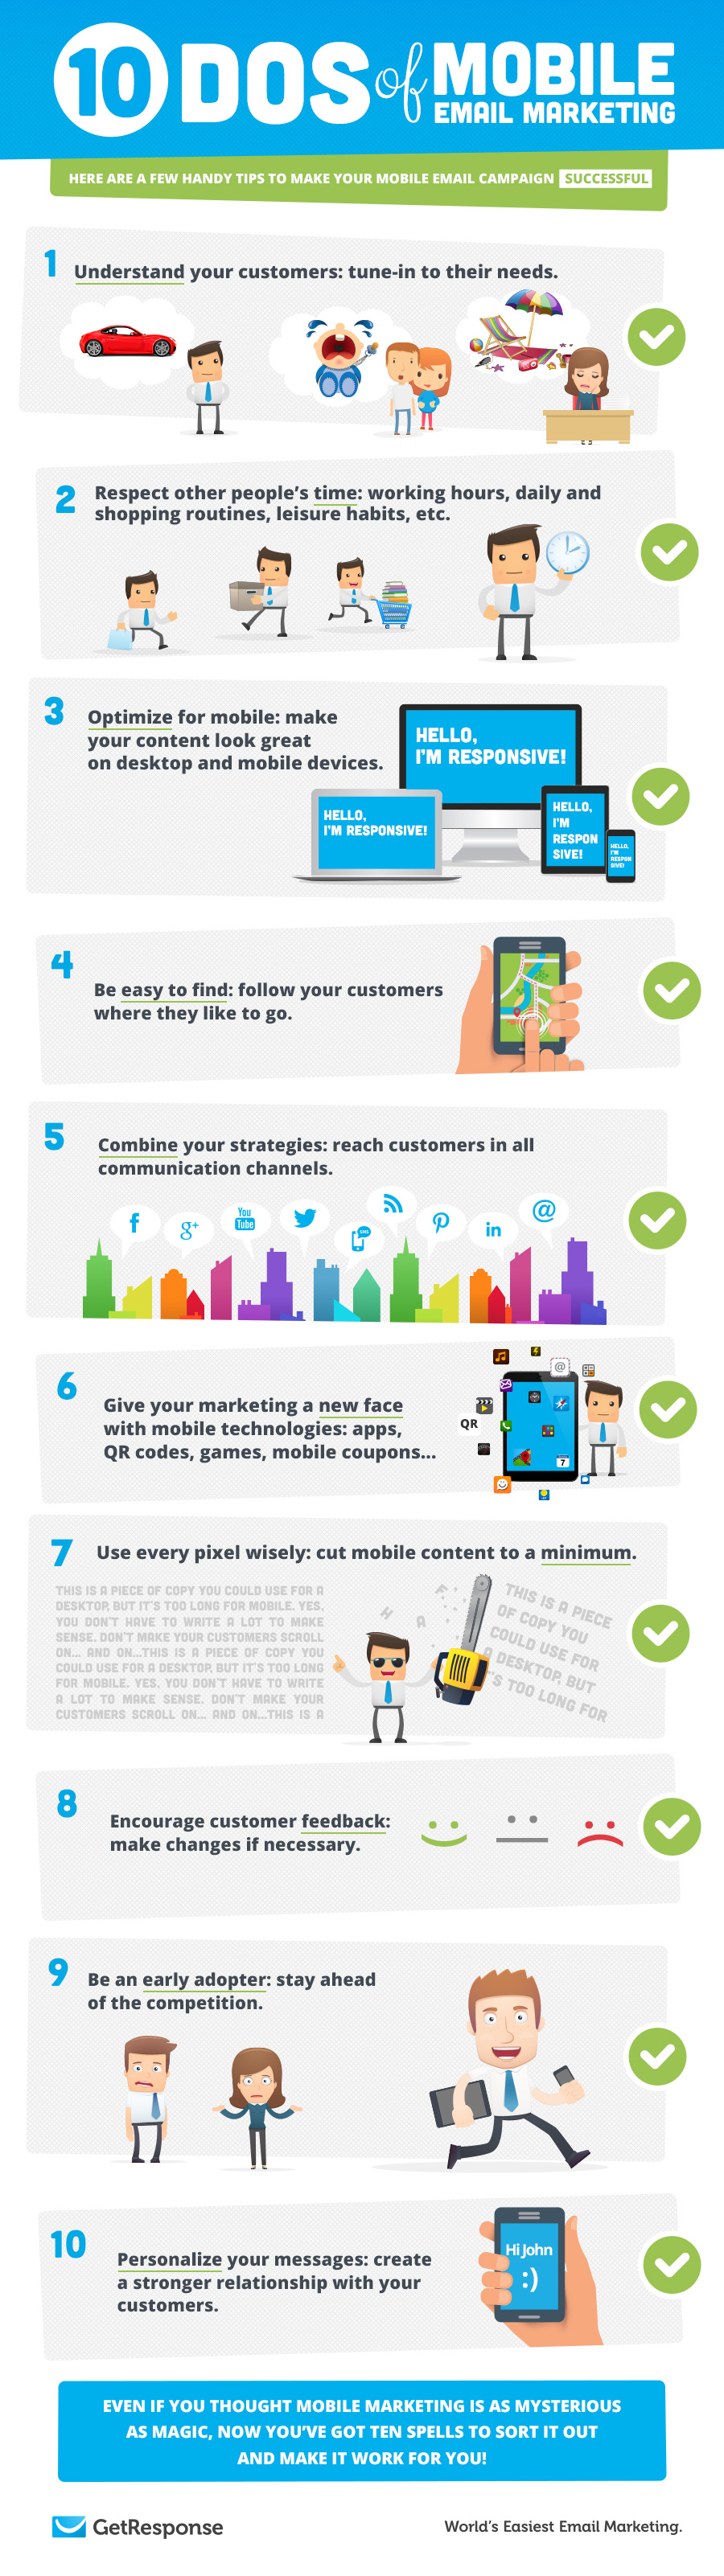 10 Dos of Mobile Email Marketing